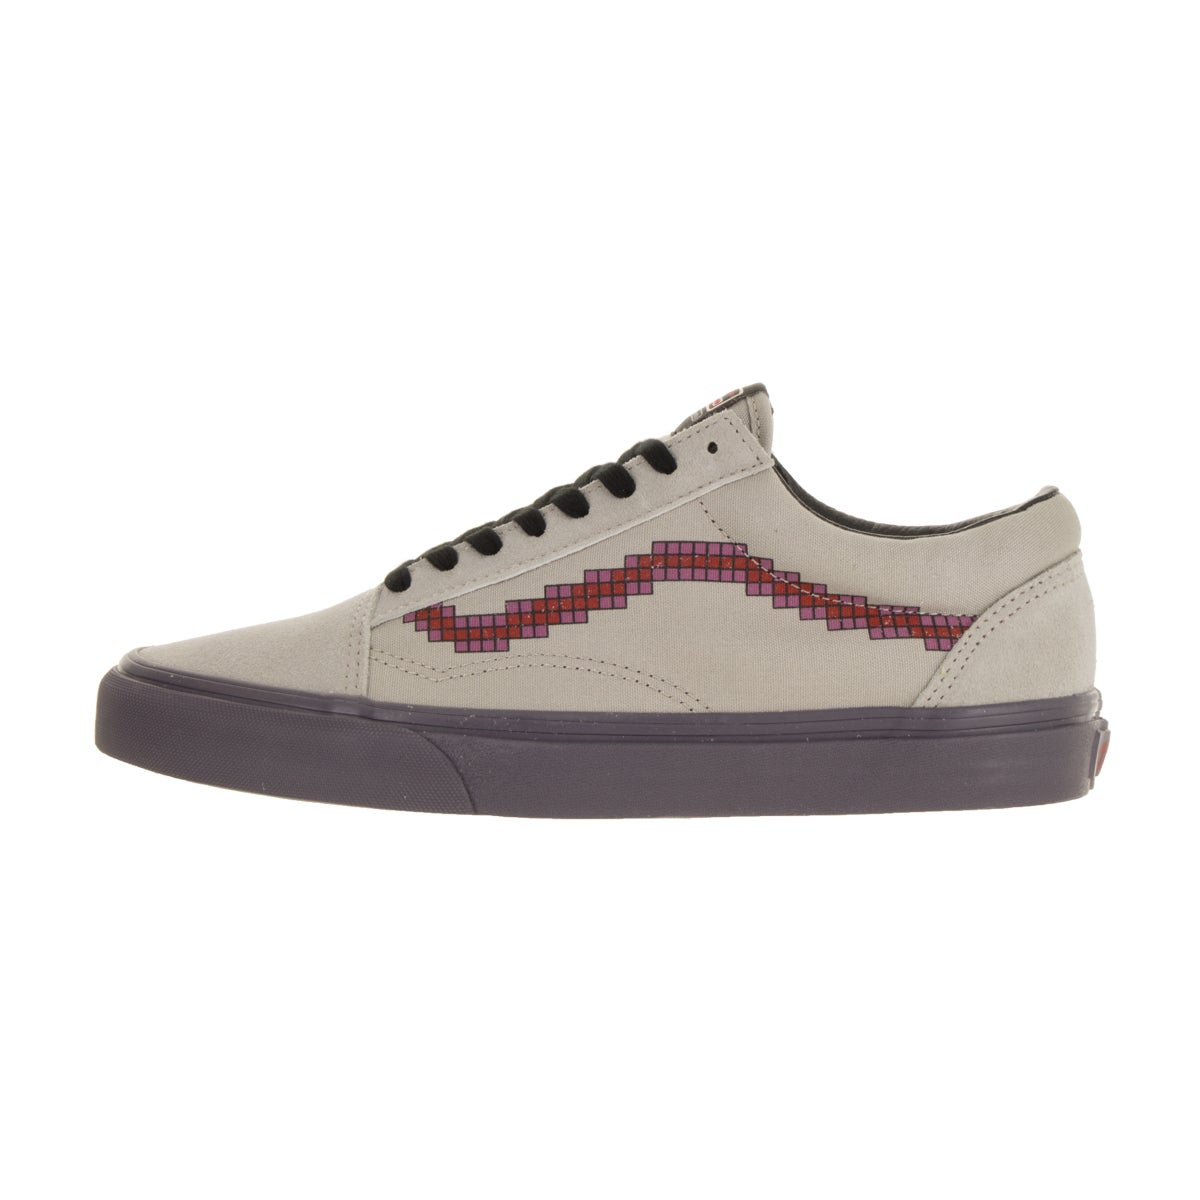 5a508608cb Shop Vans Unisex Old Skool (Nintendo) Console Dove Skate Shoe - Free  Shipping Today - Overstock - 13394973